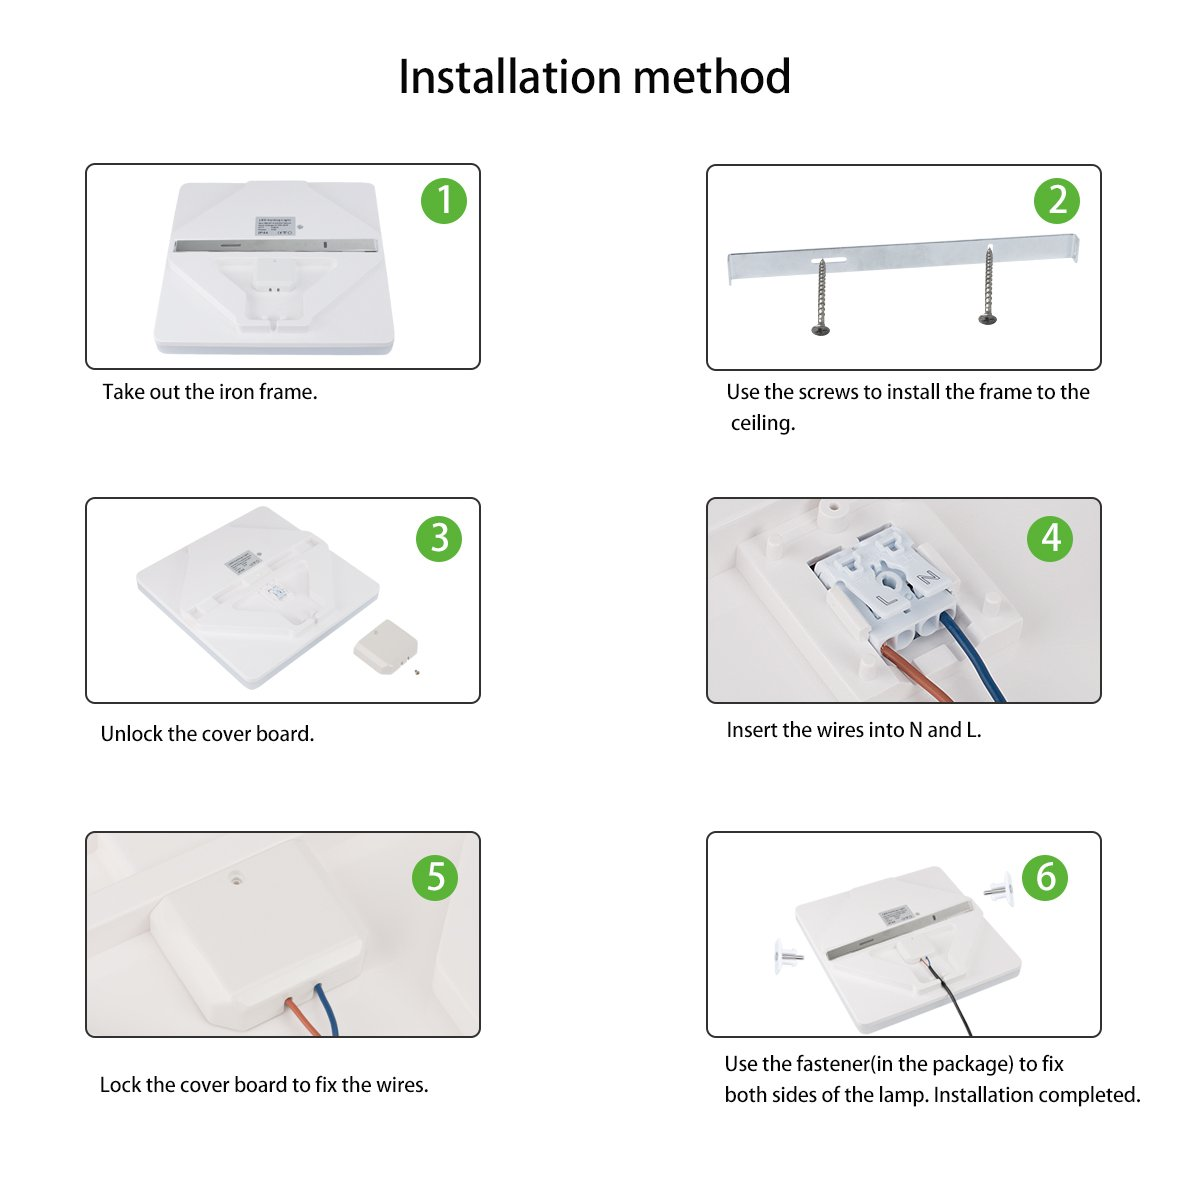 Led Ceiling Lights Flush Mount Square 5000k Cold White Light Airand Installation Wiring 24w Waterproof Ip44 2050 Lumens 126in Lamps For Bathroom Kitchen Bedroom Living